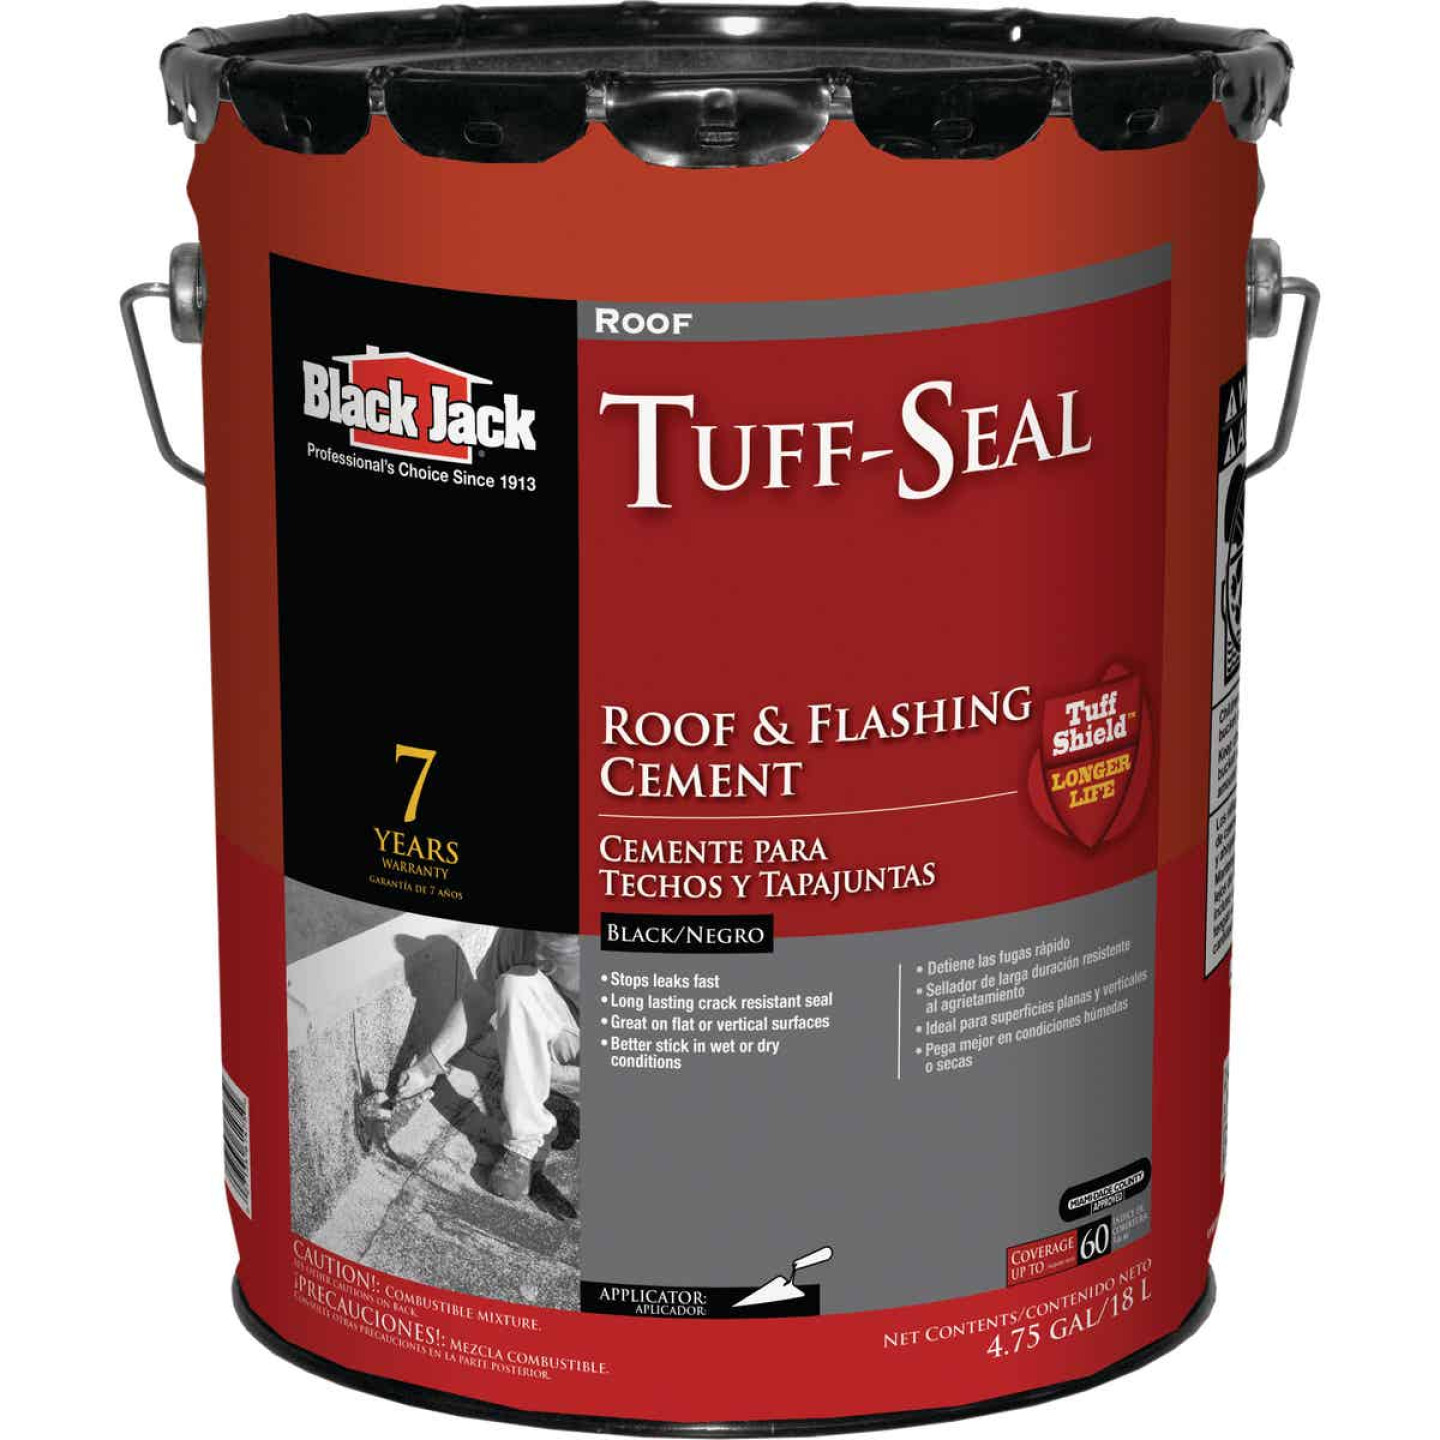 Black Jack Tuff-Seal 5 Gal. Roof Cement & Flashing Sealant Image 1